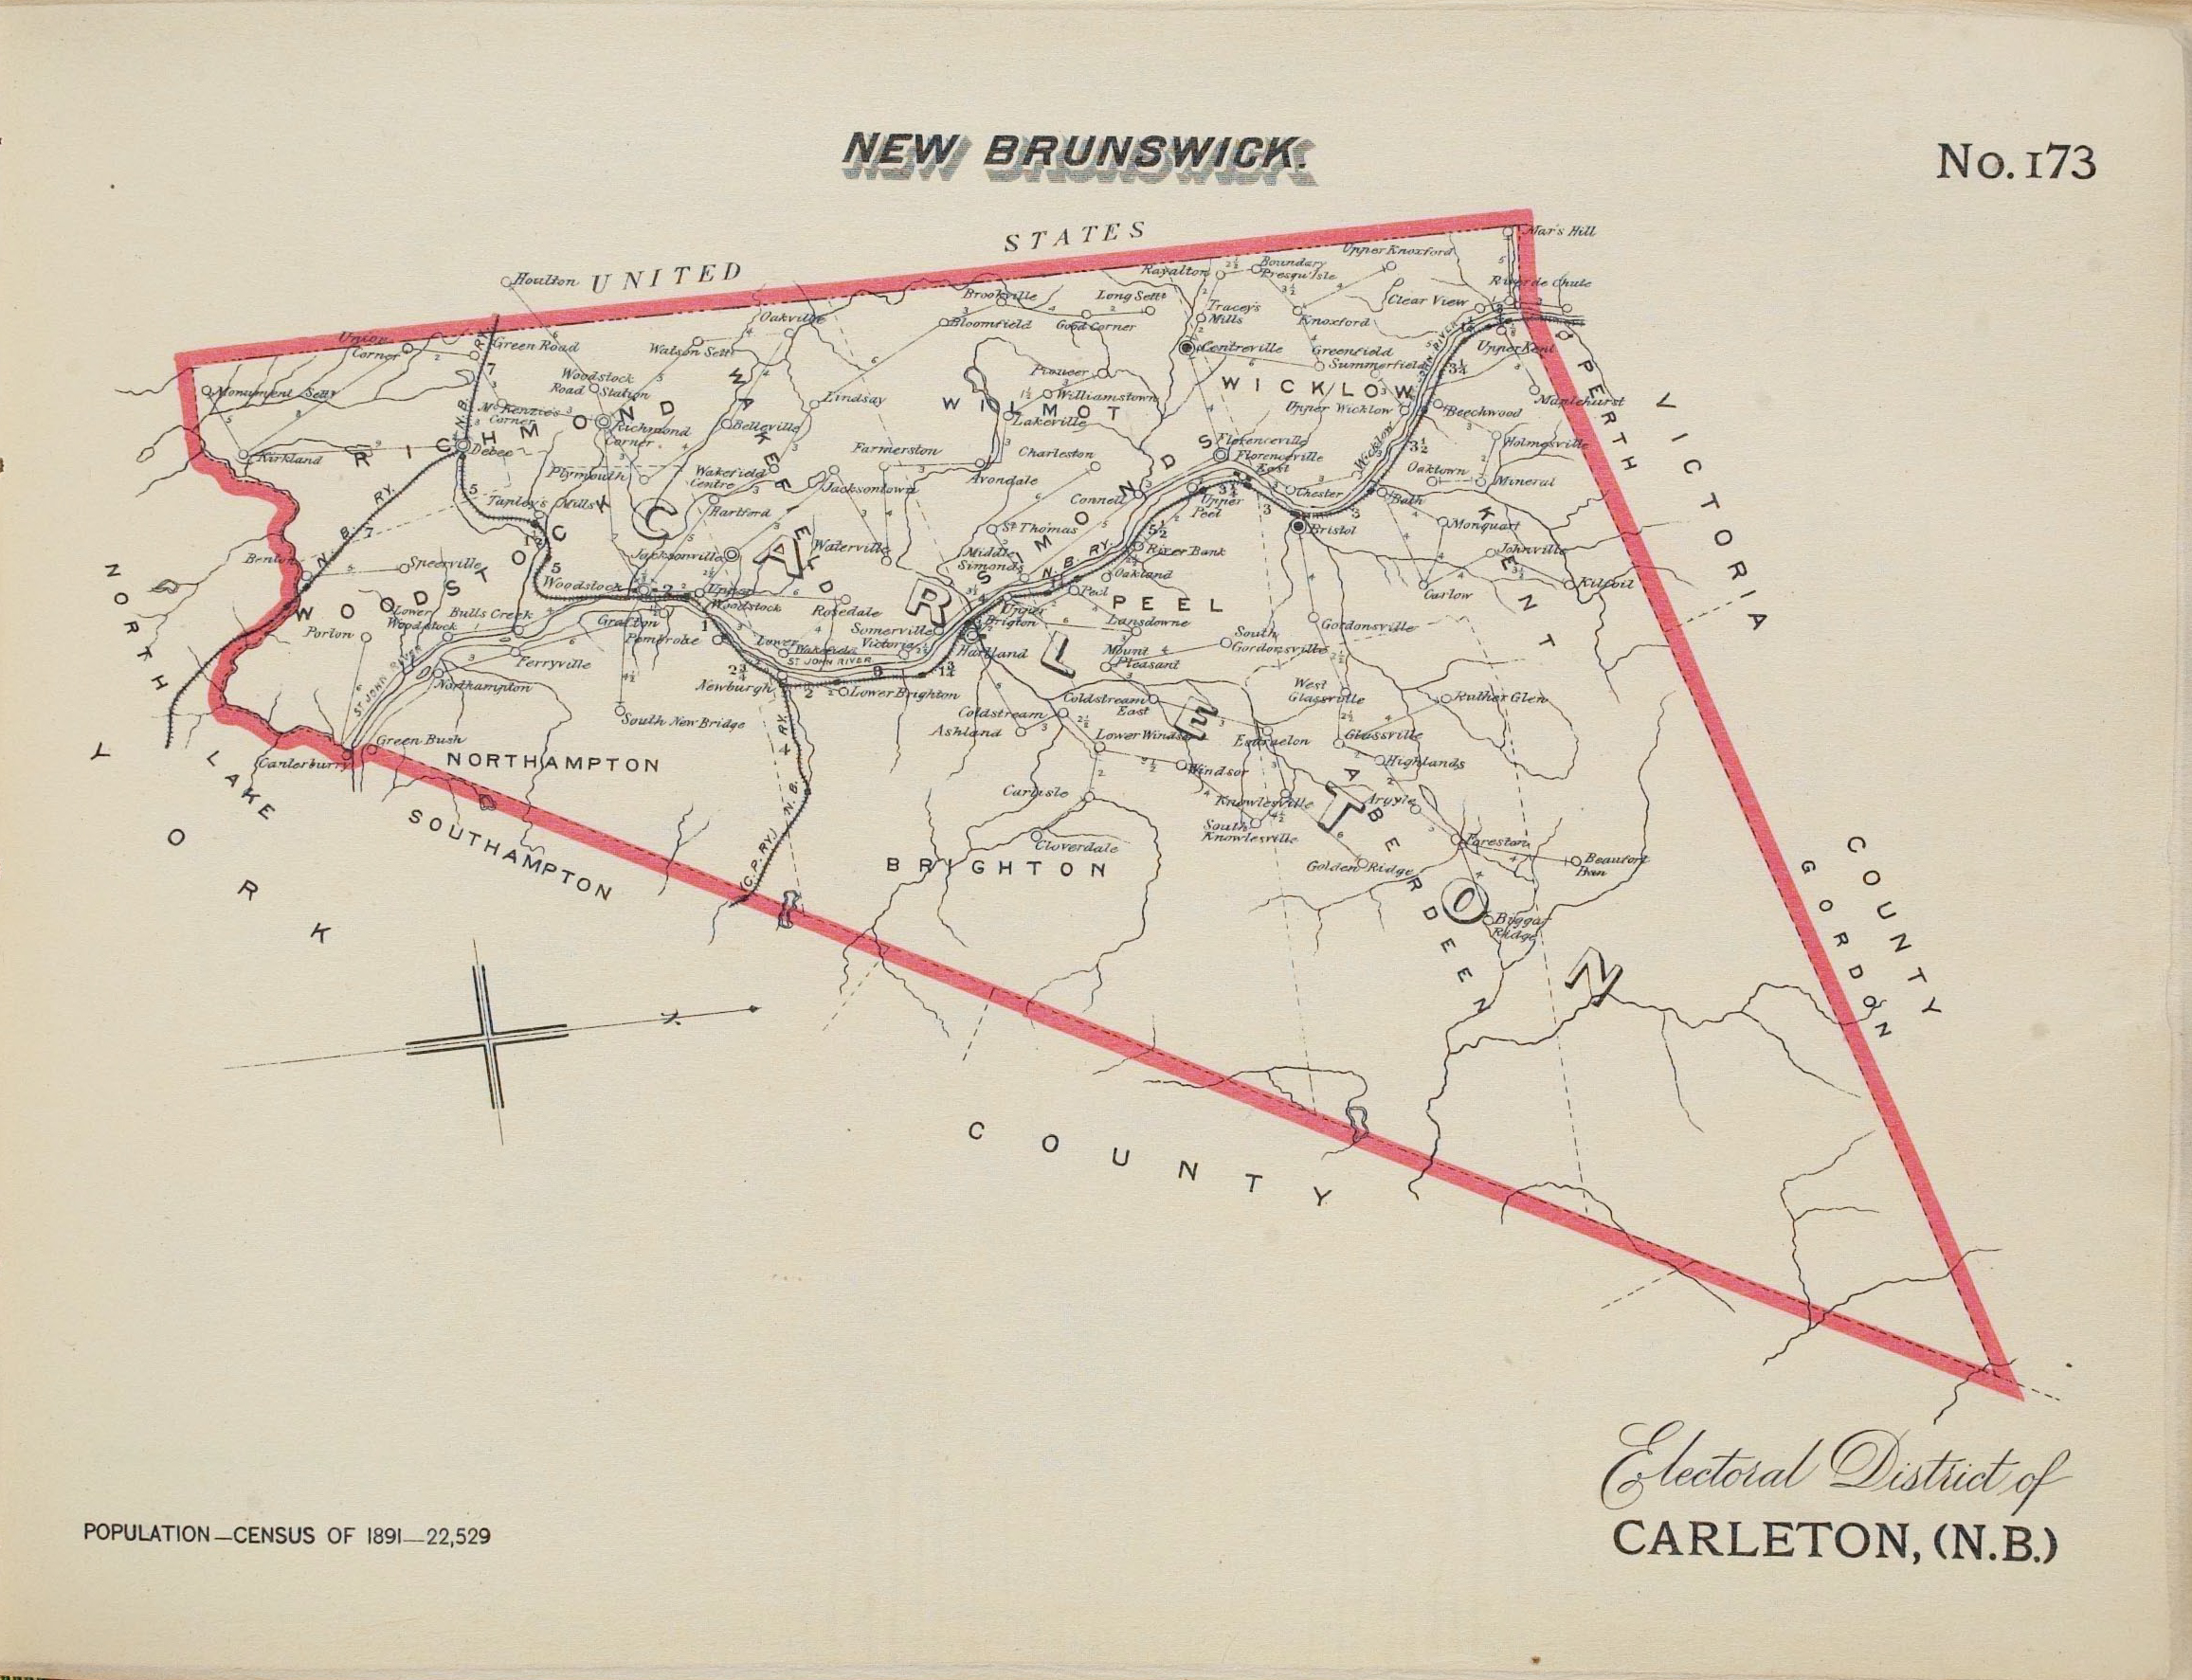 A black-and-white map of the Electoral District of Carleton, New Brunswick, with boundaries indicated in a thick red line.